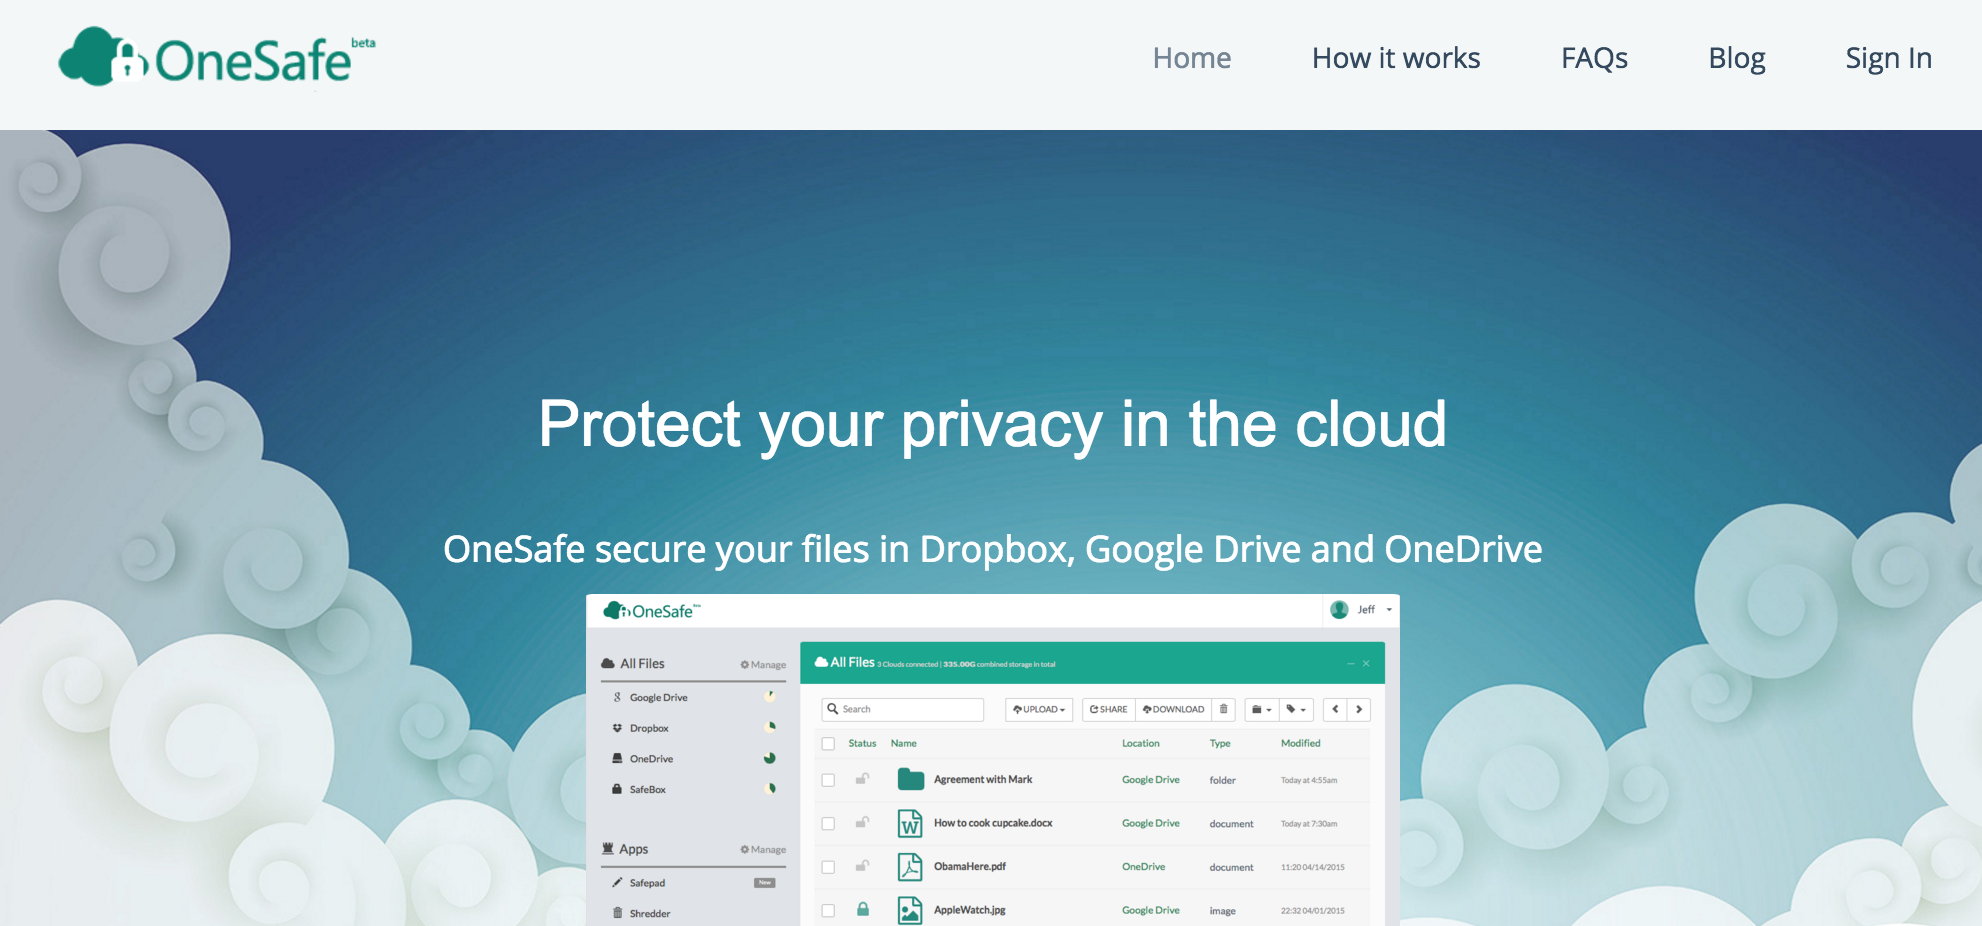 OneSafe protects your privacy in the cloud.